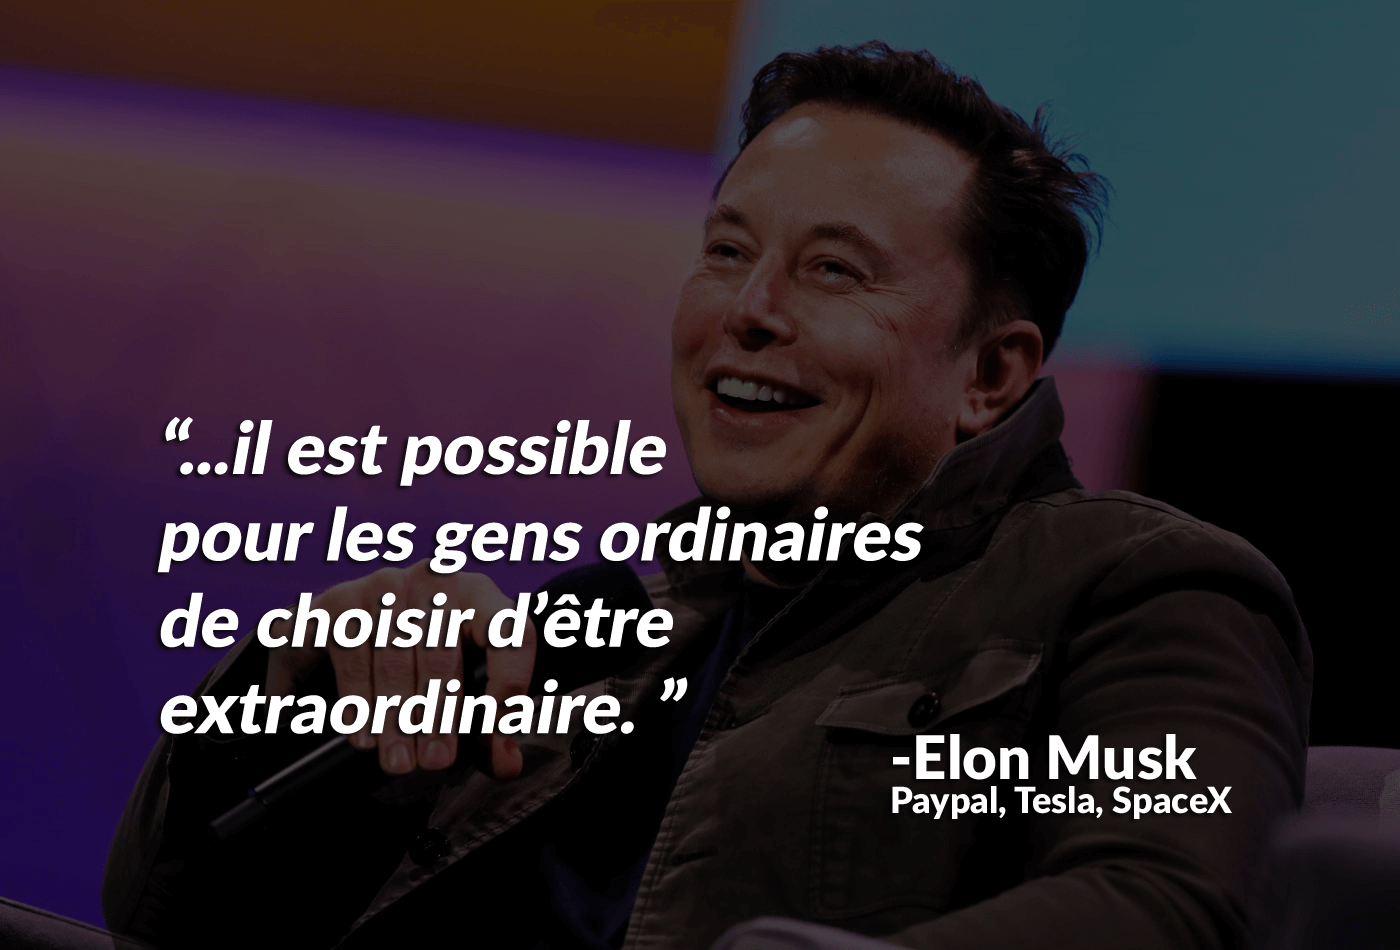 Citations Elon Musk - Tesla - SpaceX - Paypal - nSpek